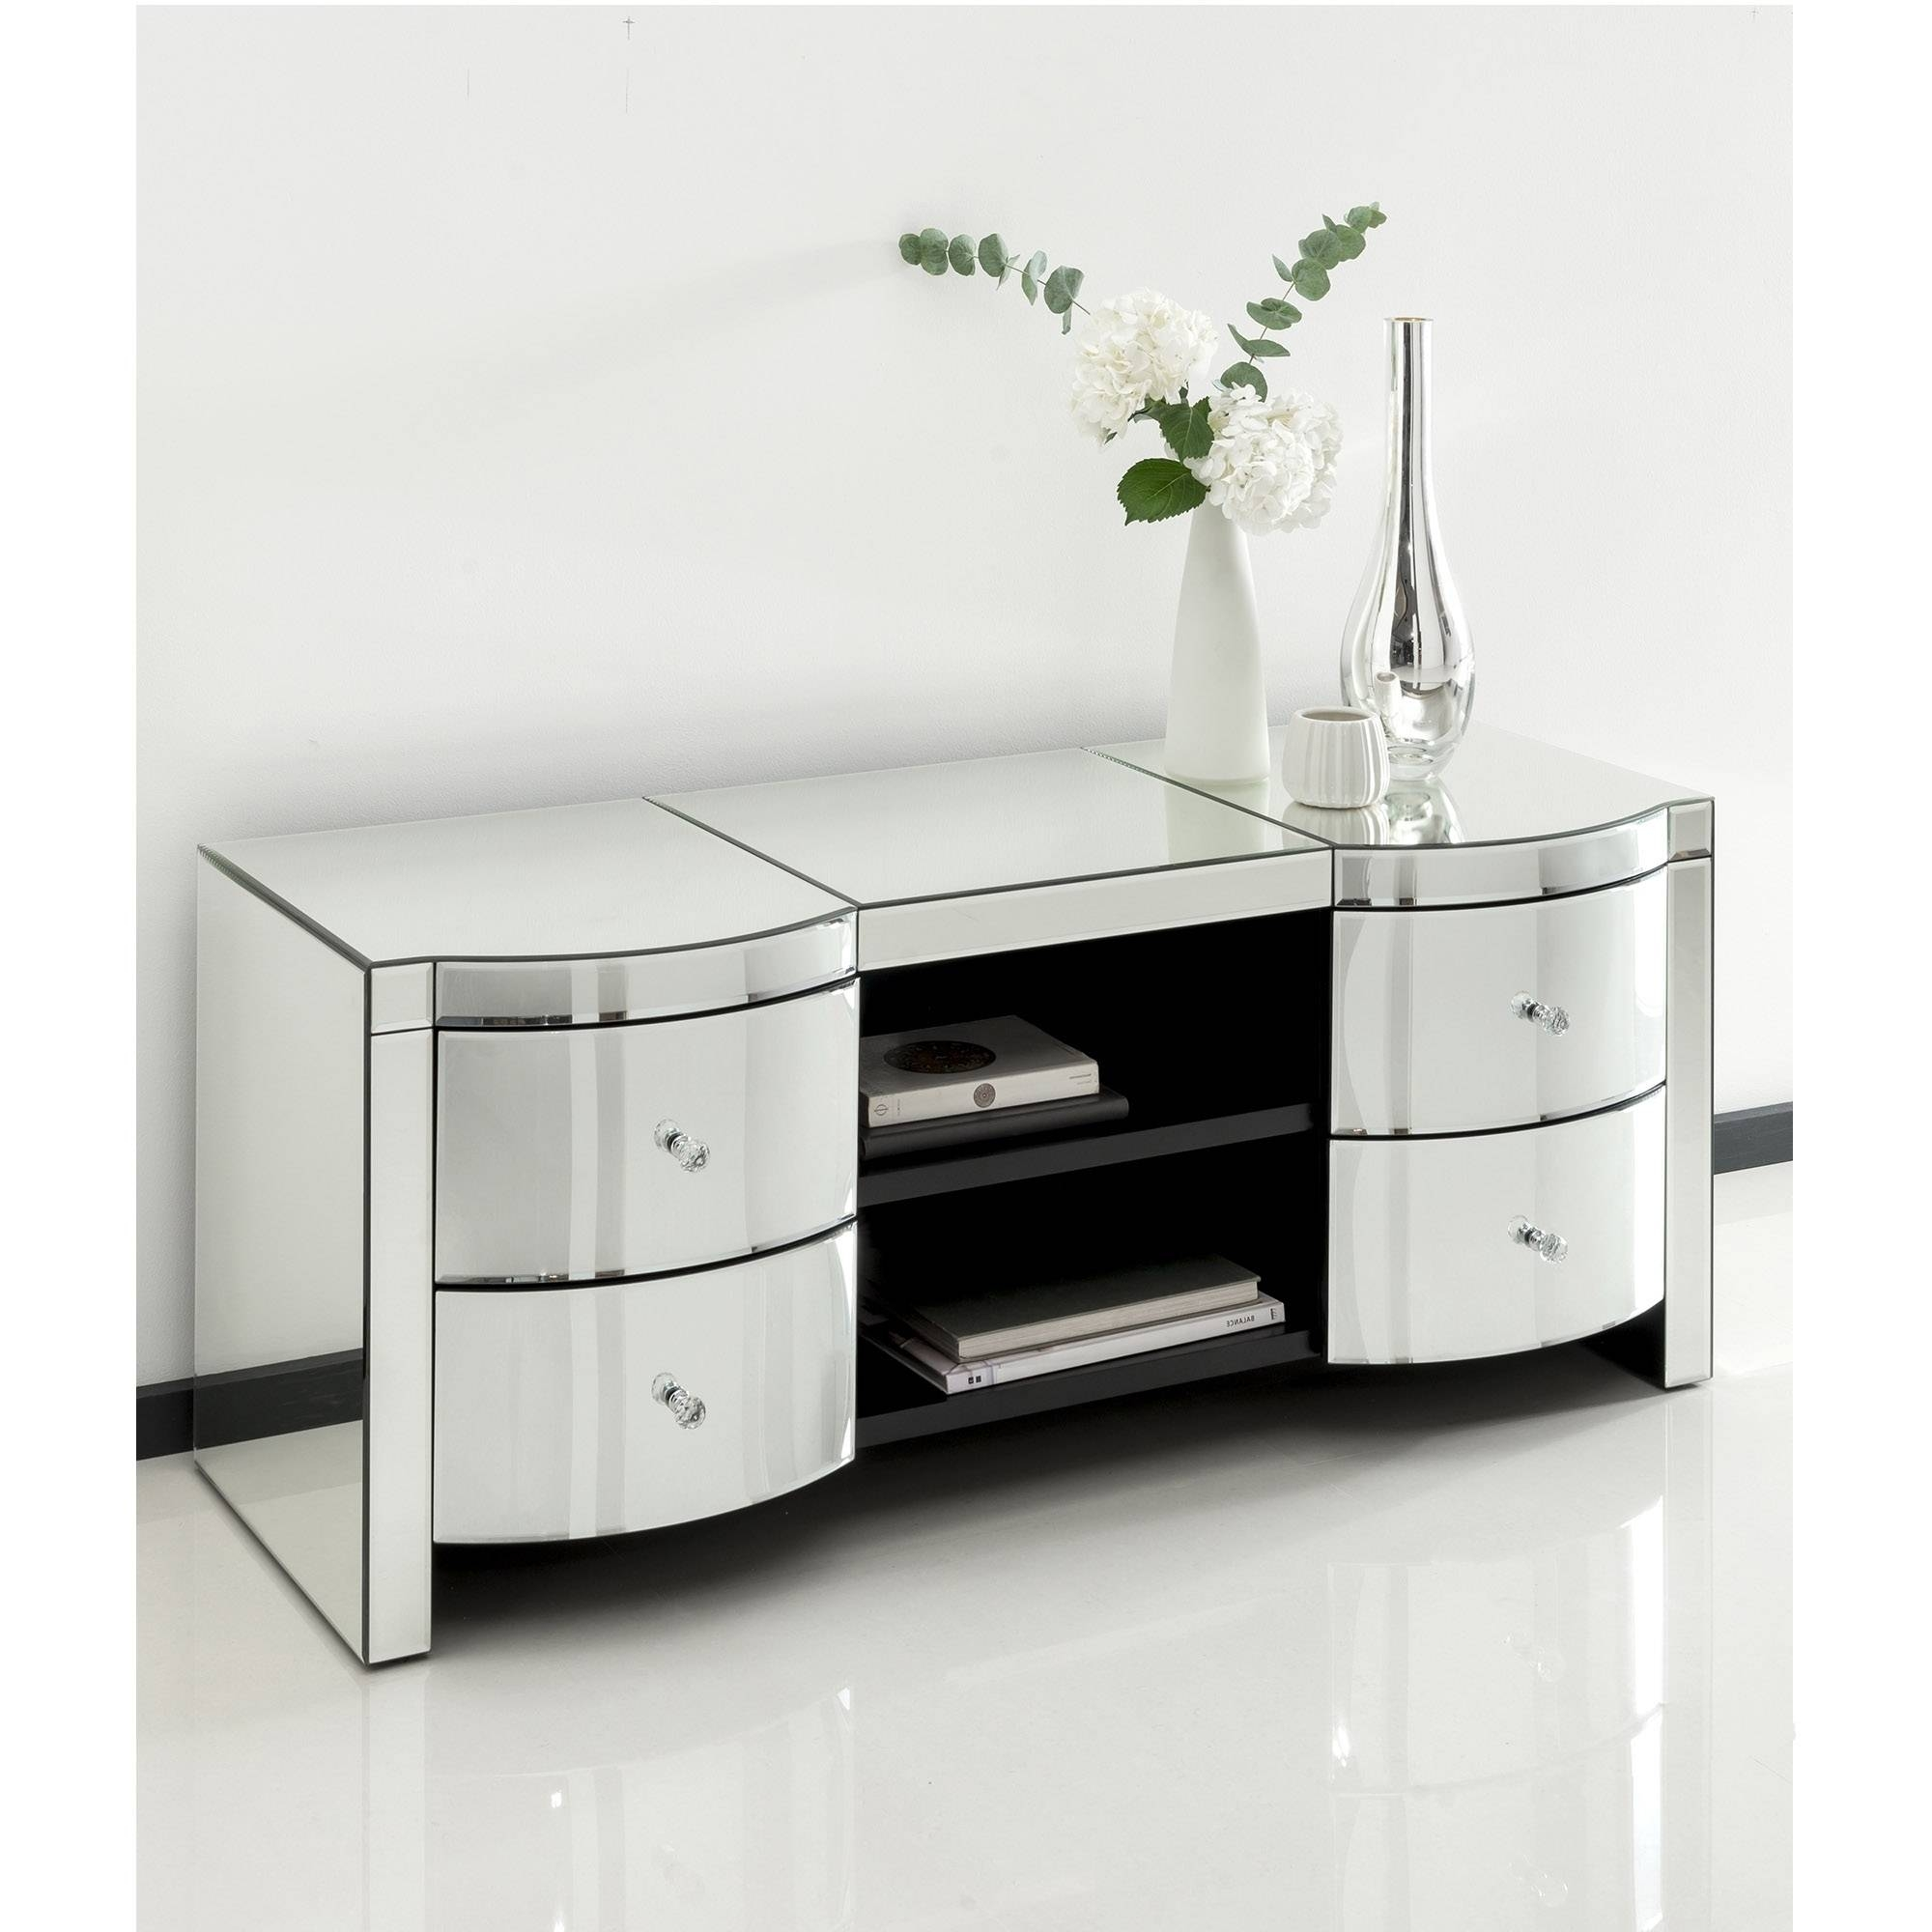 Mirrored Tv Cabinet | Glass Venetian Furniture | Homesdirect365 within Mirrored Tv Stands (Image 7 of 15)